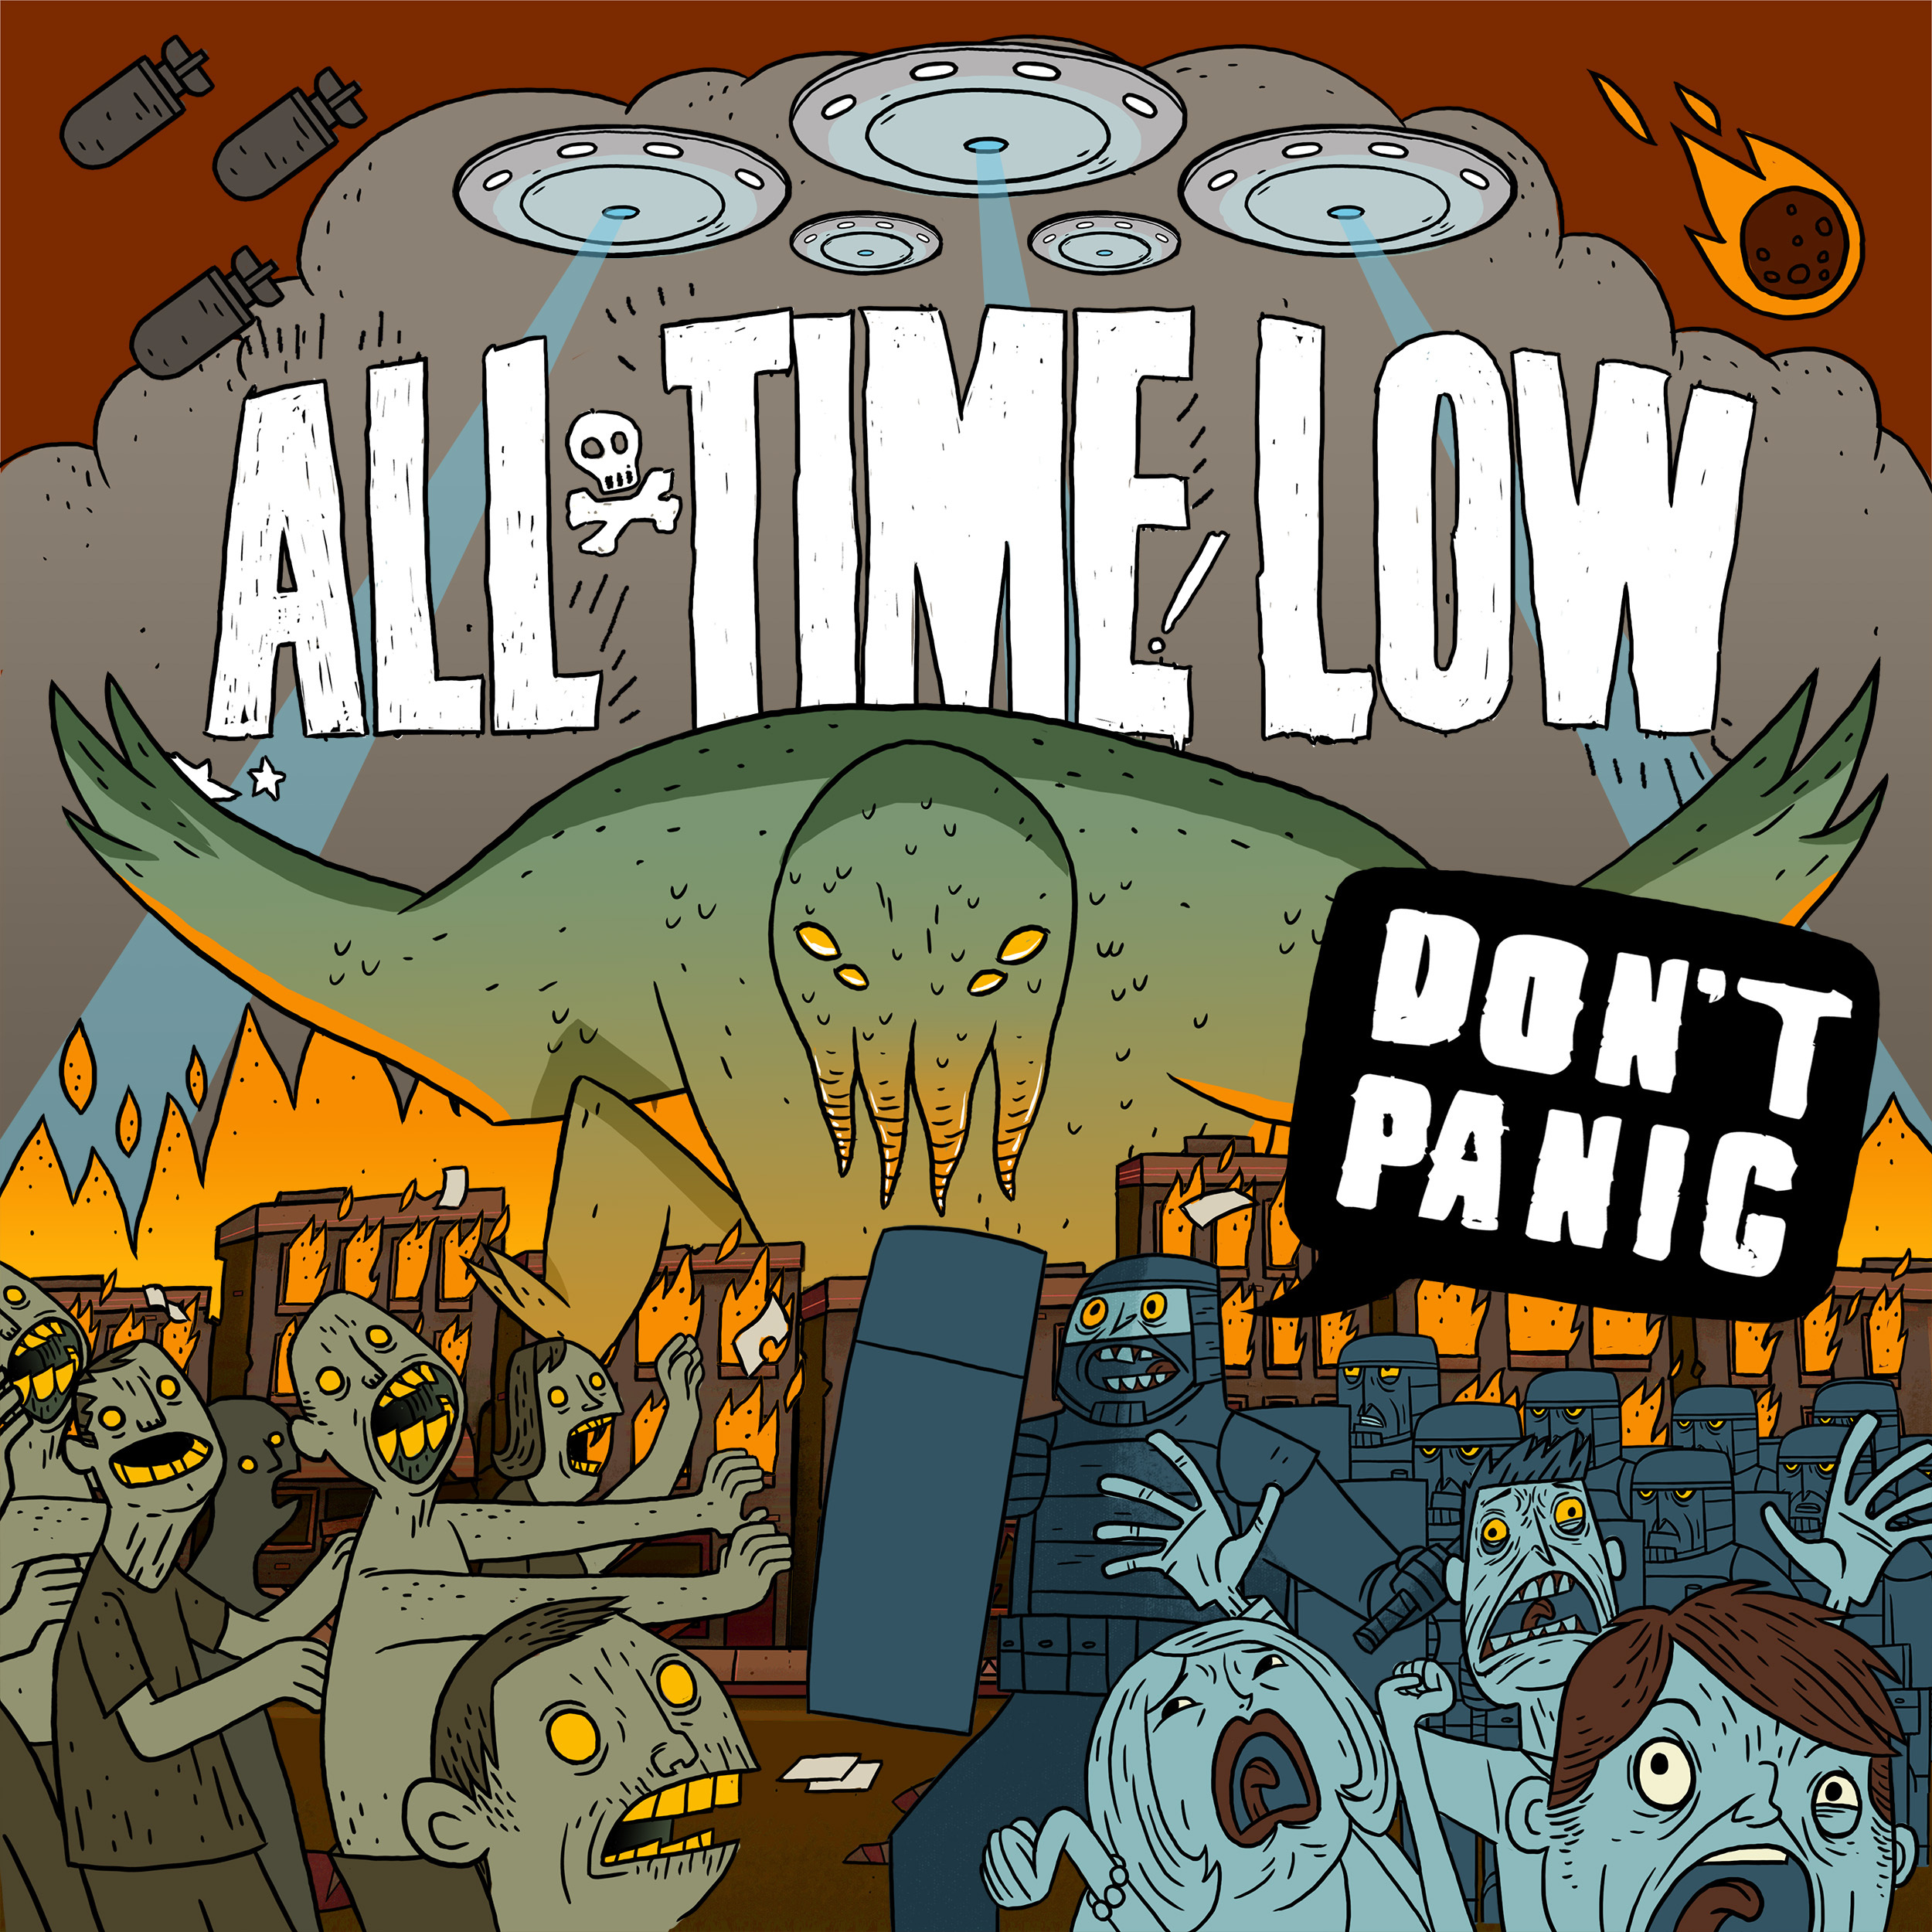 10 most underrated all time low songs alt columnist 8 to live and let go dont panic 2012 hexwebz Images